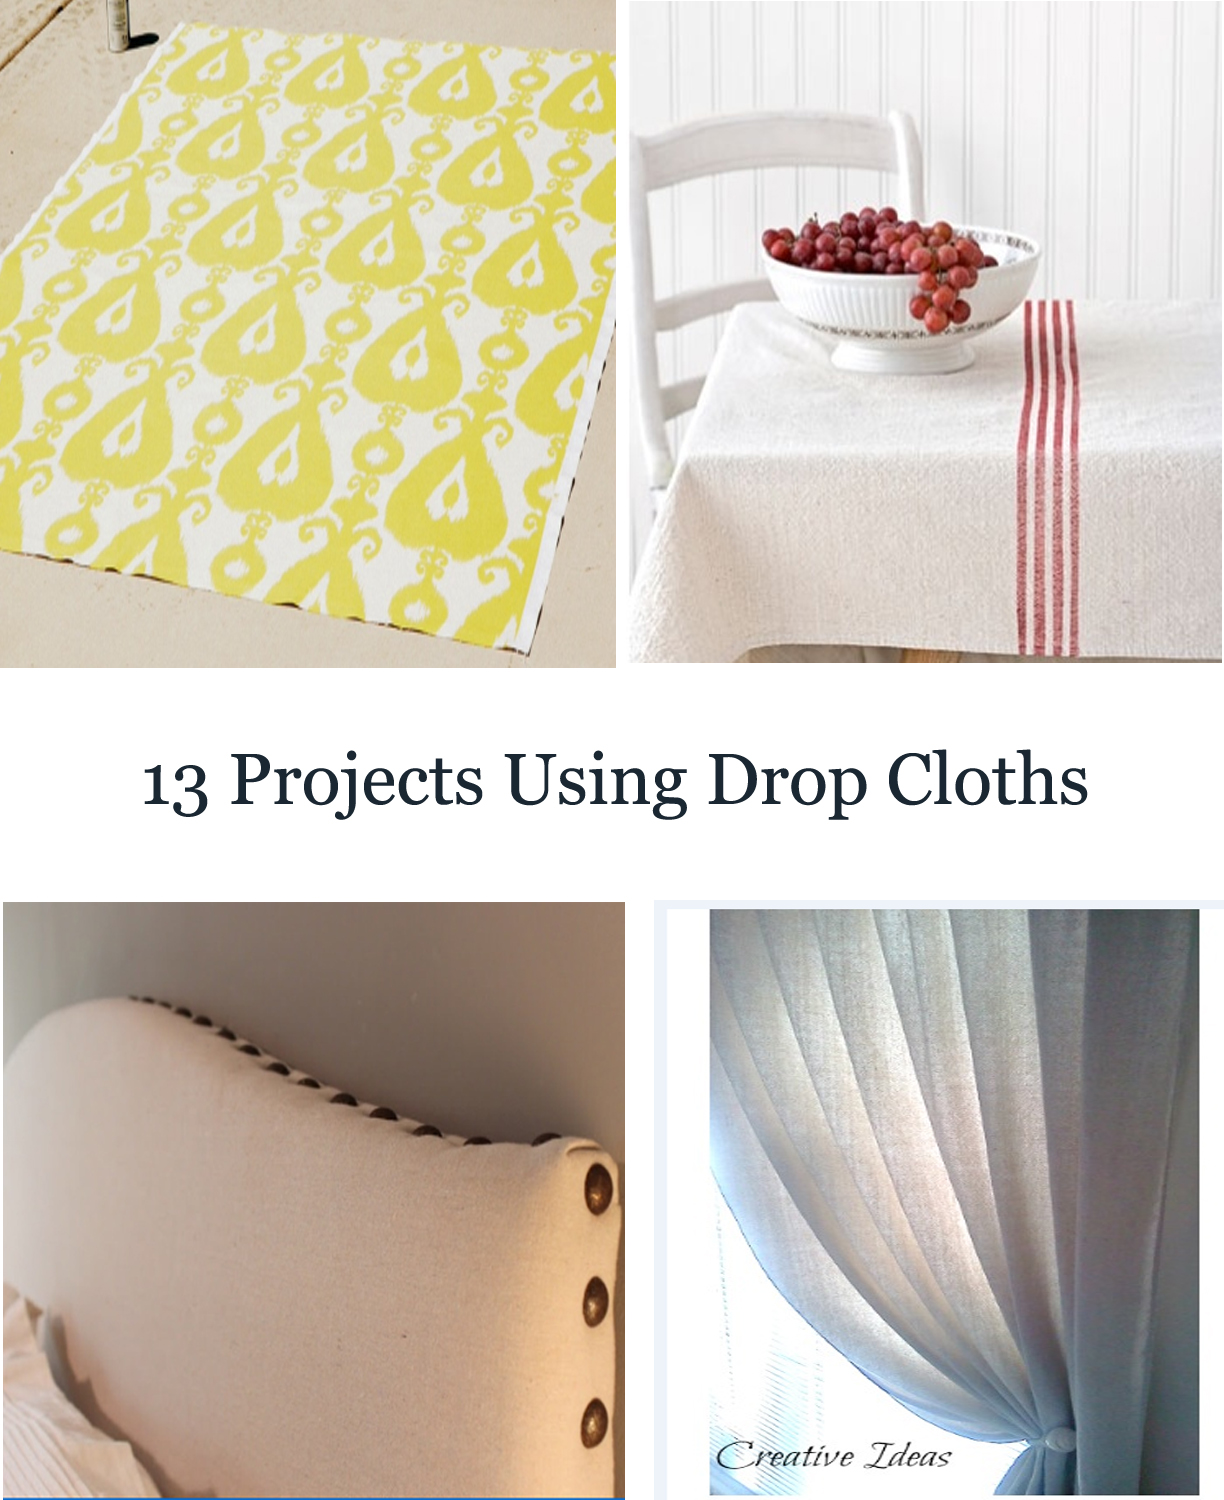 13 projects using drop cloths